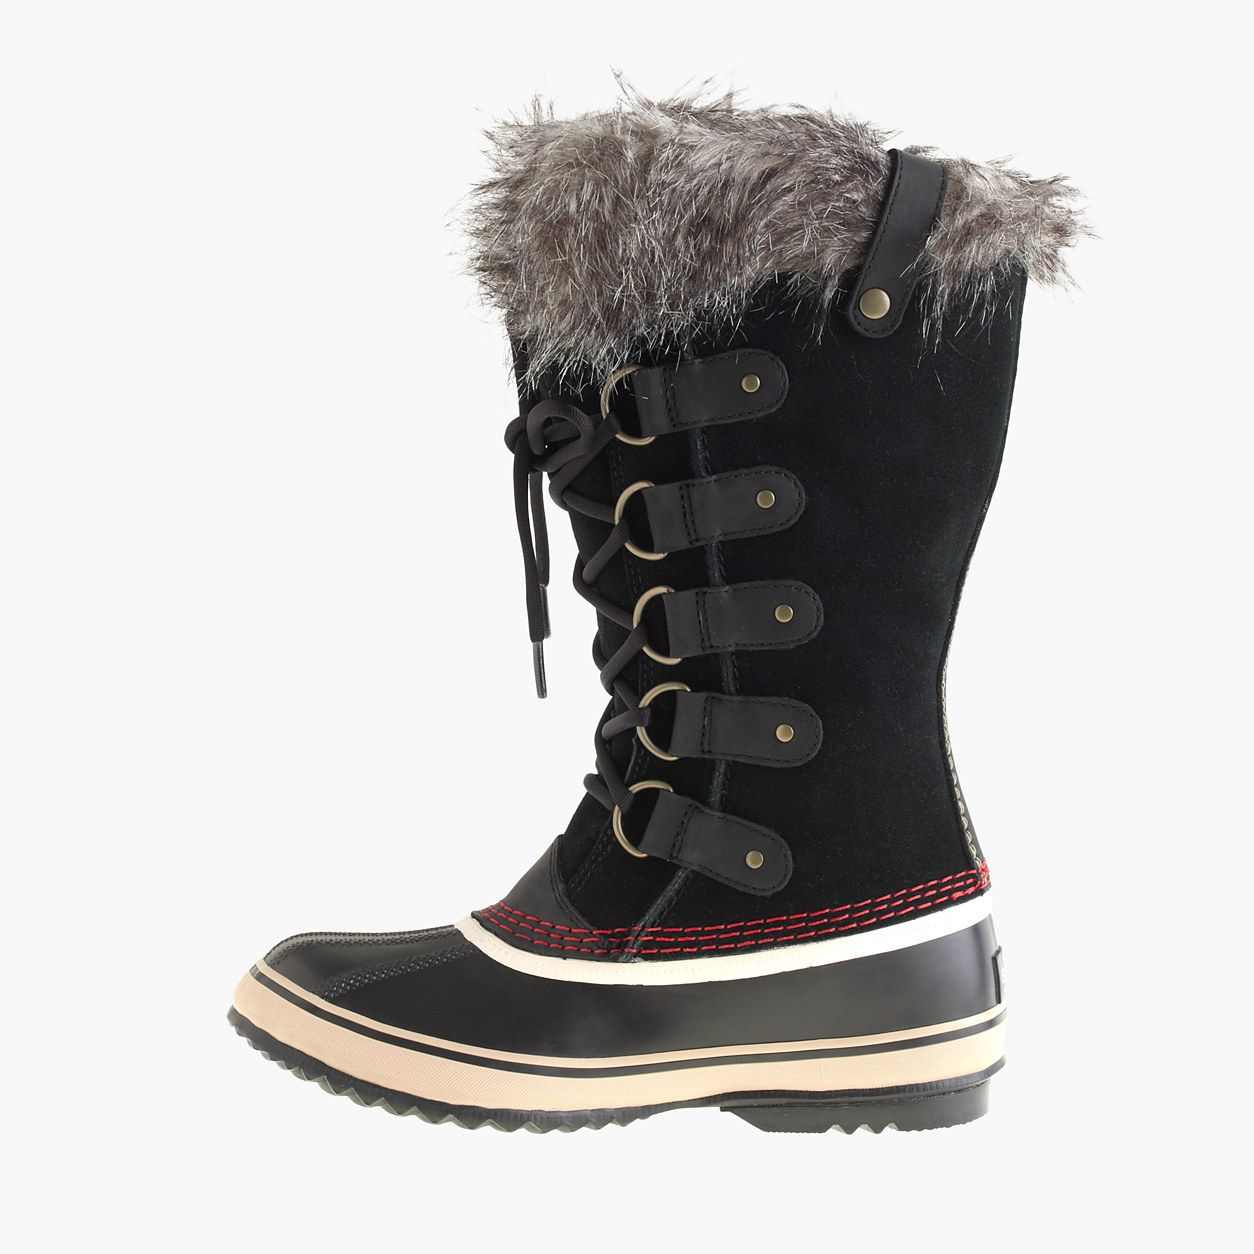 Founded in Ontario, Canada, in 1908, Sorel has long been